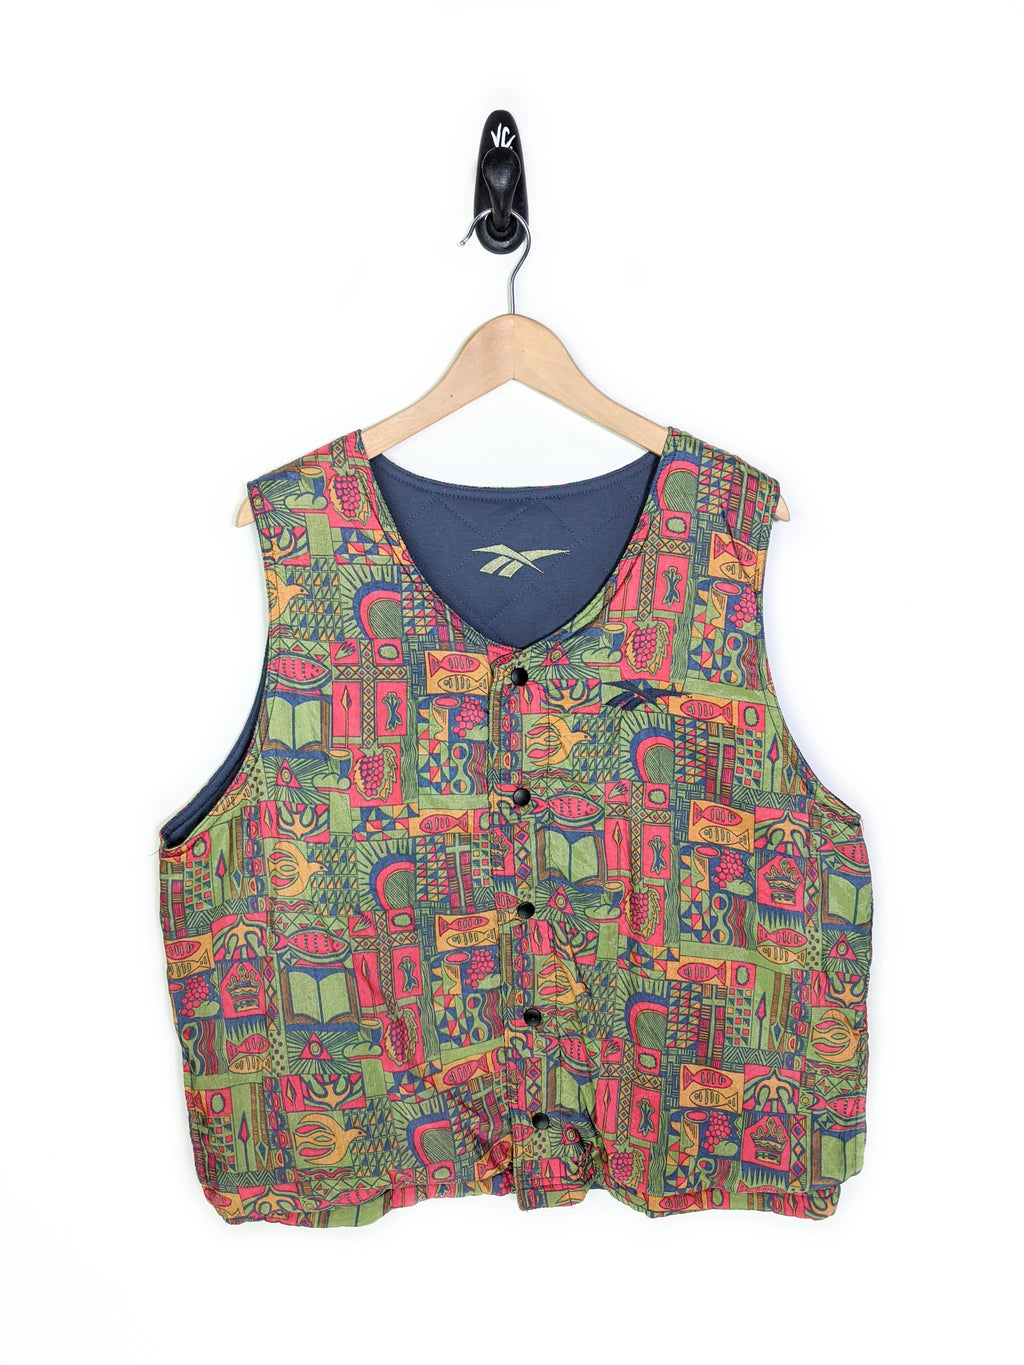 90's Wild Graffiti Reversible Vest (L)